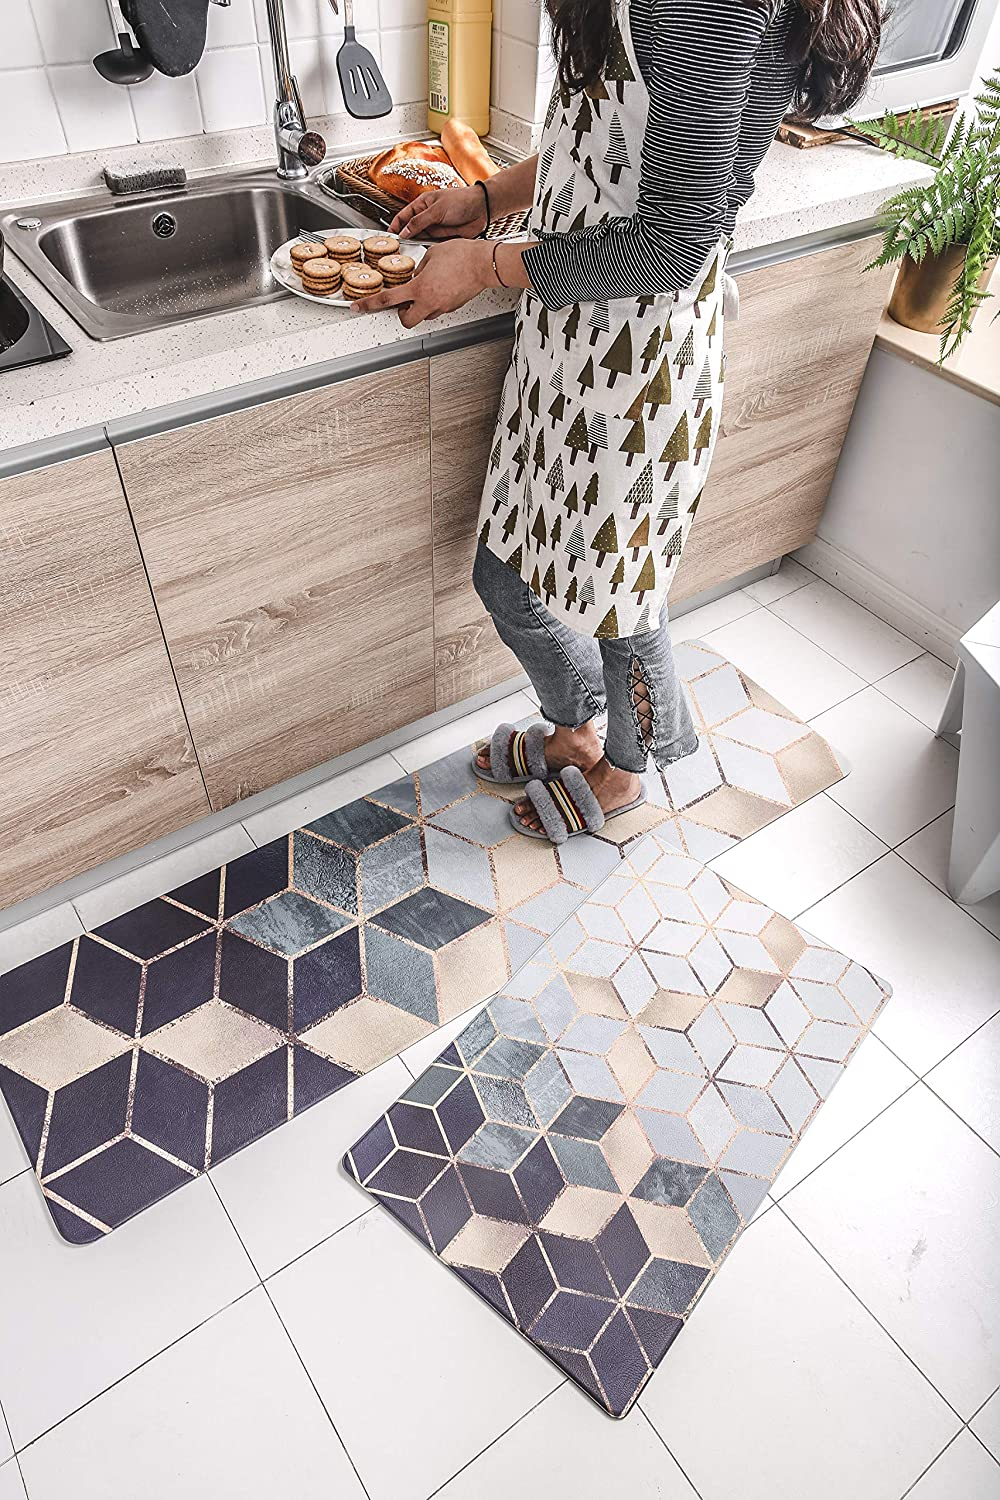 2 Piece Non-slip Anti-Fatigue Kitchen Mat – (17.7  x 29.5 +17.7  x 59 ) Soft Non Skid Throw Rugs Runner Carpet for Kitchen Hallway Entryway and Bedroom – Oil Resistant Long PVC Kitchen F (Dream Light)